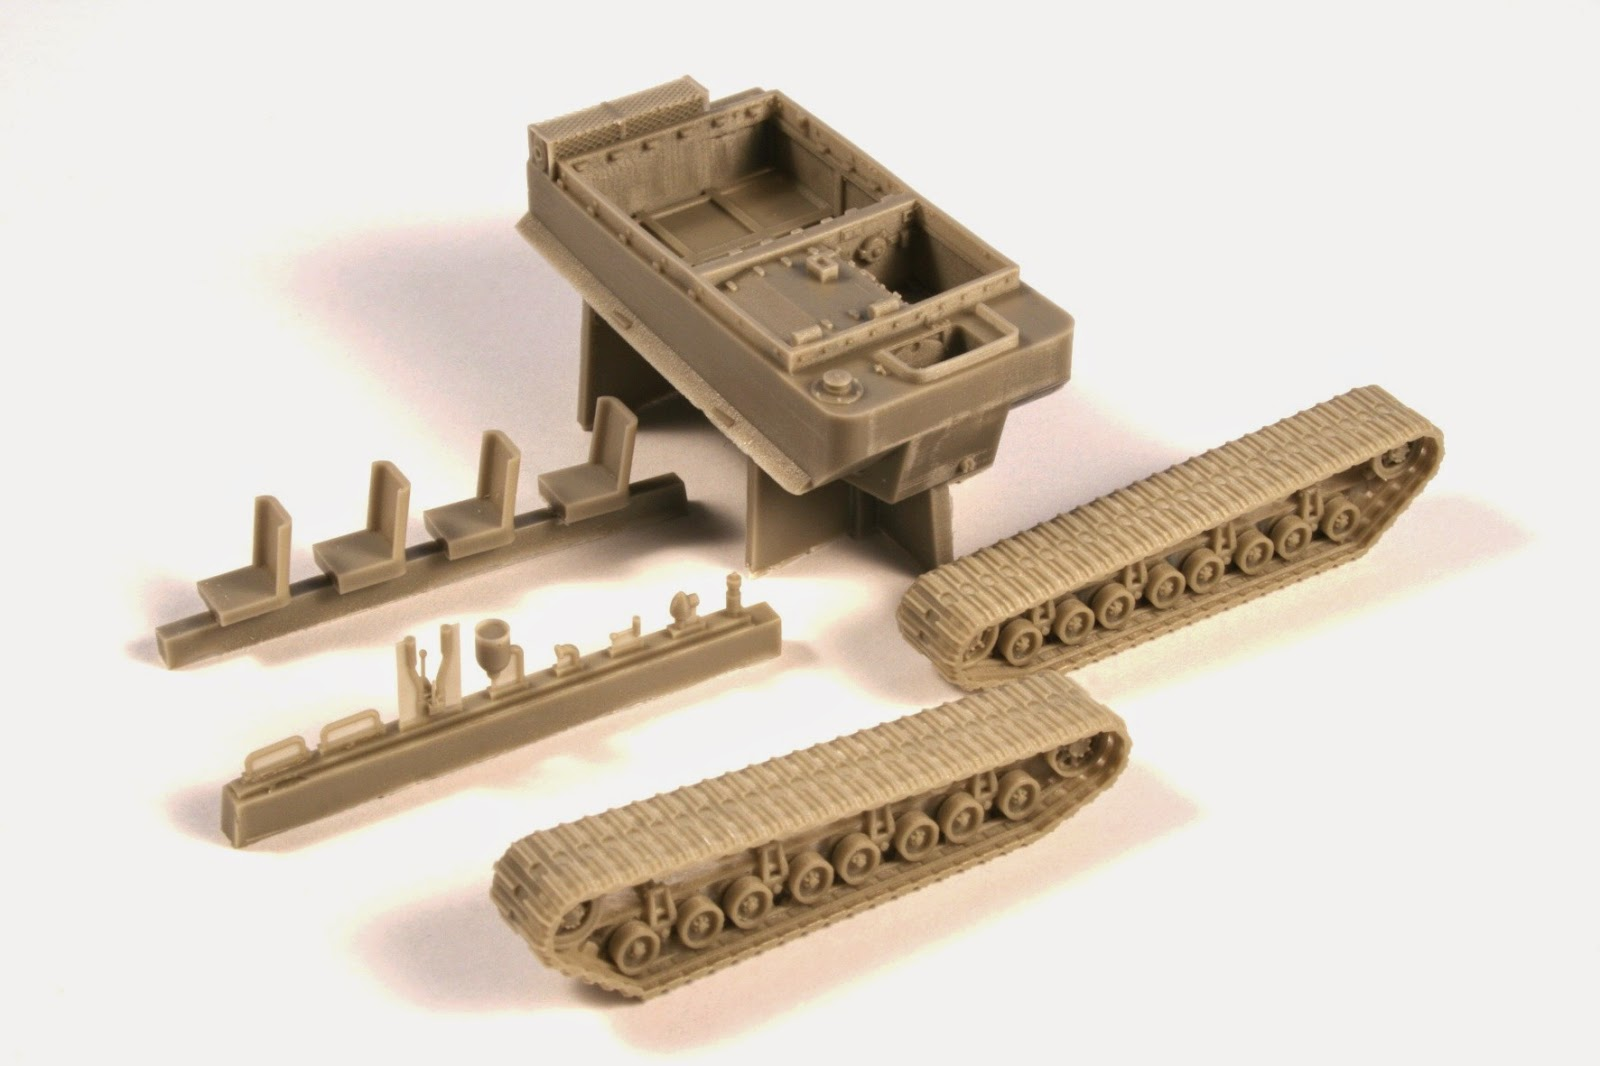 M29 Weasel - CMK resin kit no. 8049 in 1/48 unveiled